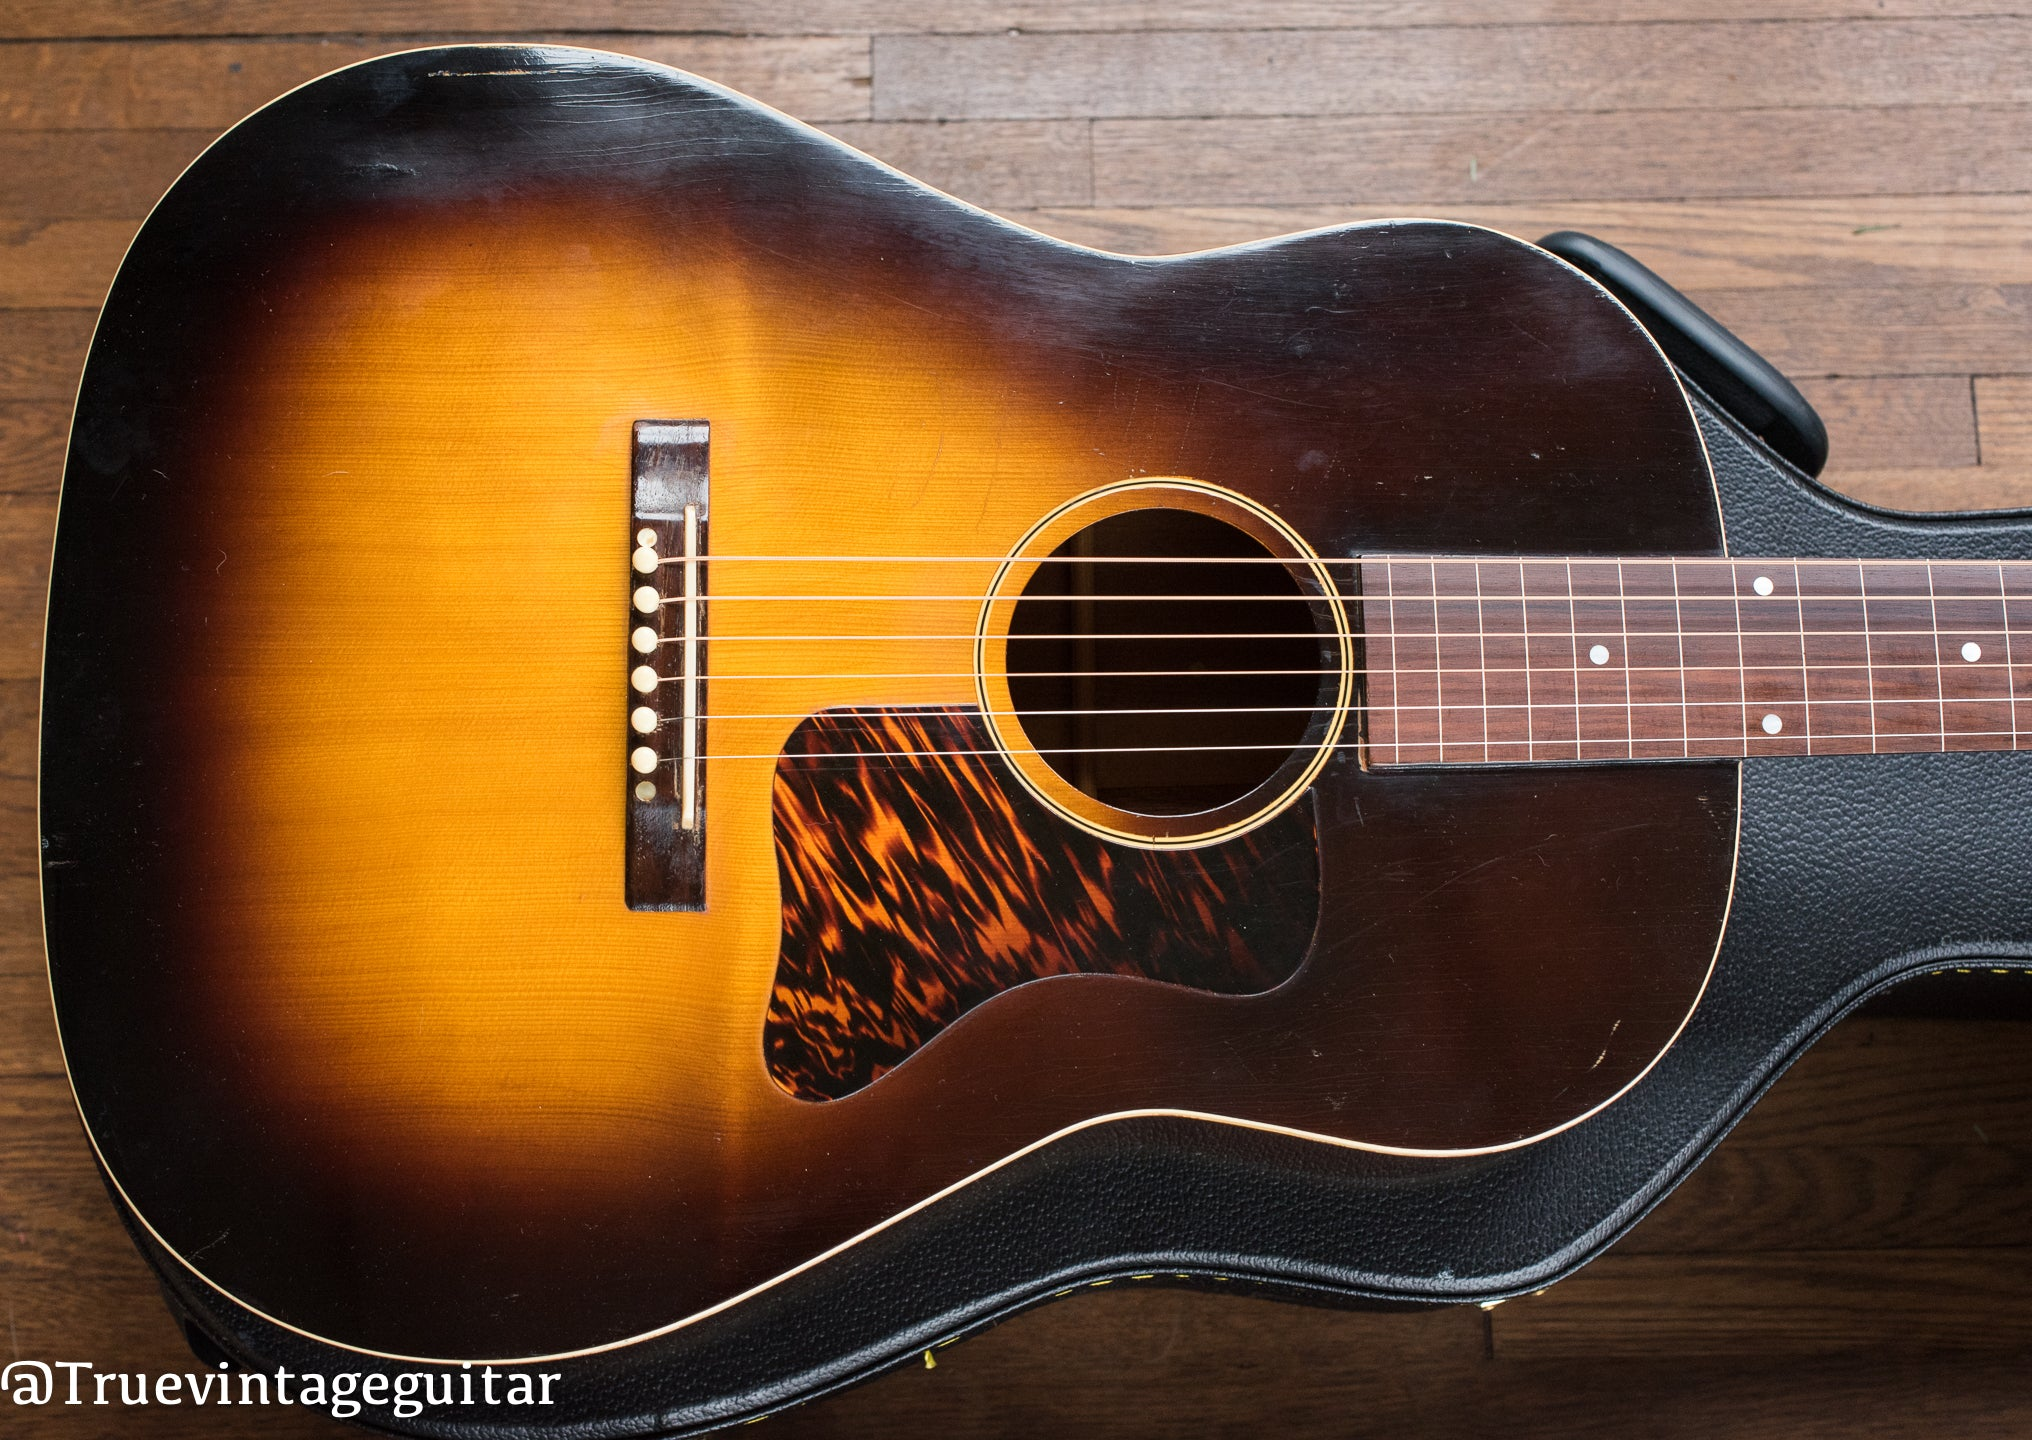 1930s Gibson Roy Smeck guitar